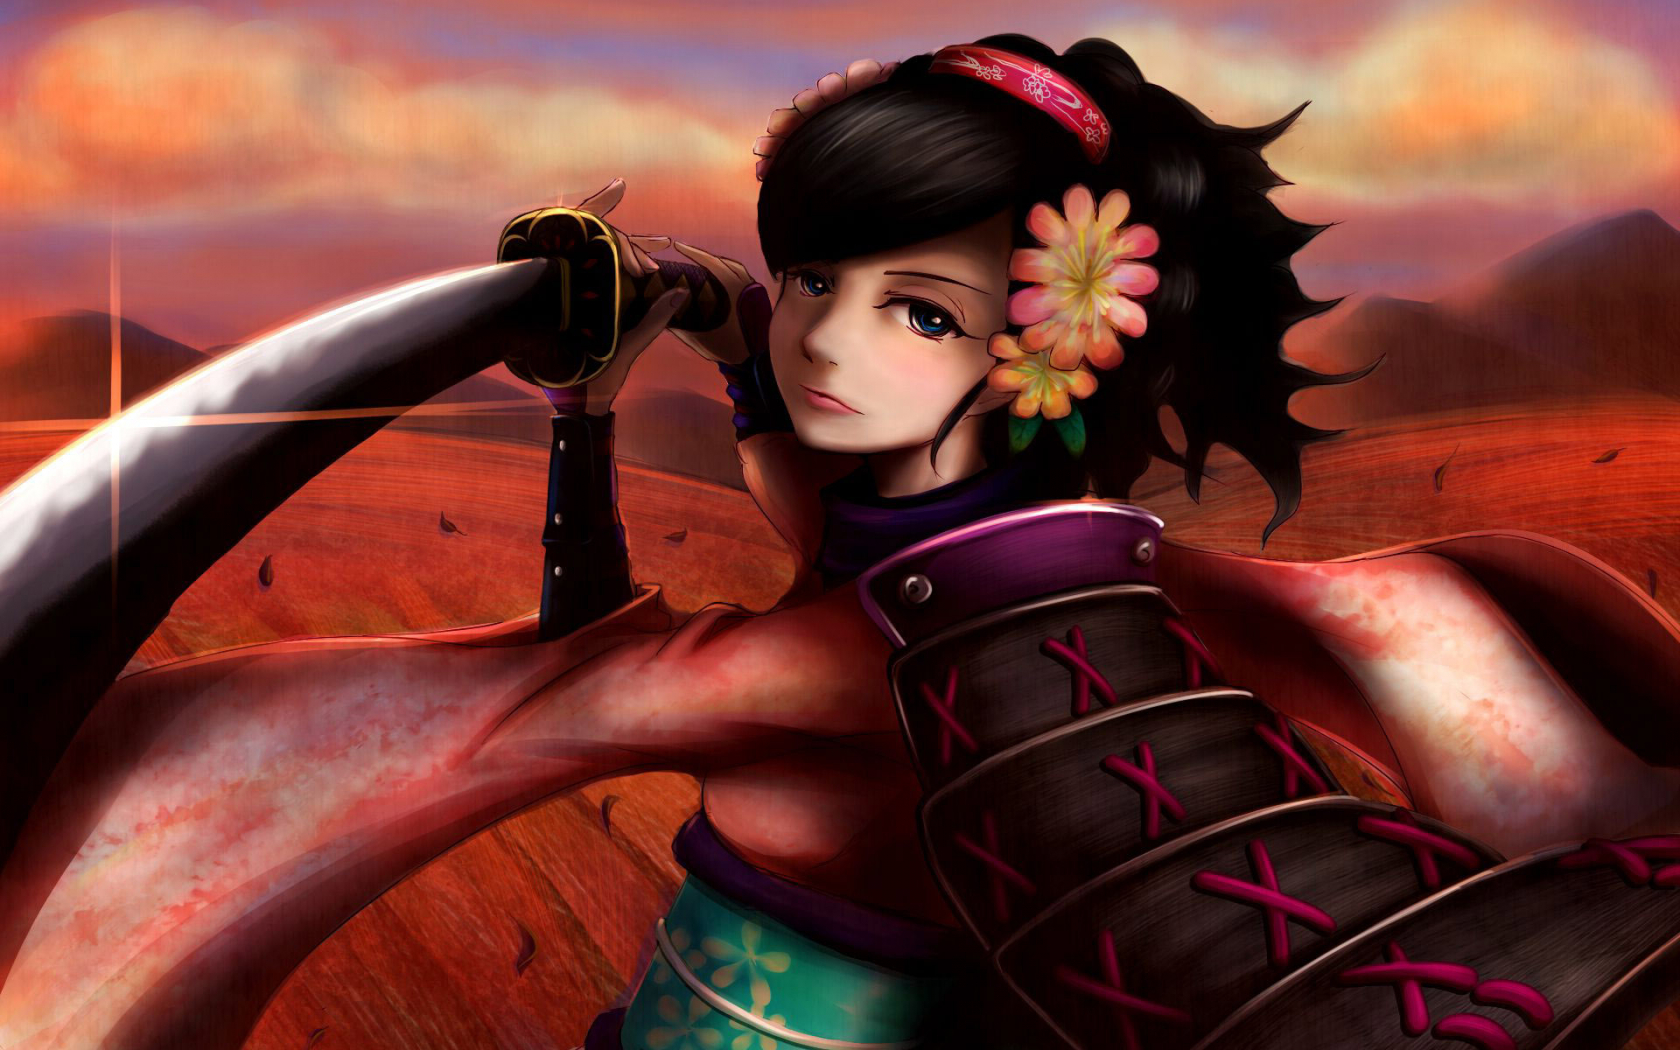 Free Download Muramasa The Demon Blade Wallpaper 19909 1920x1200